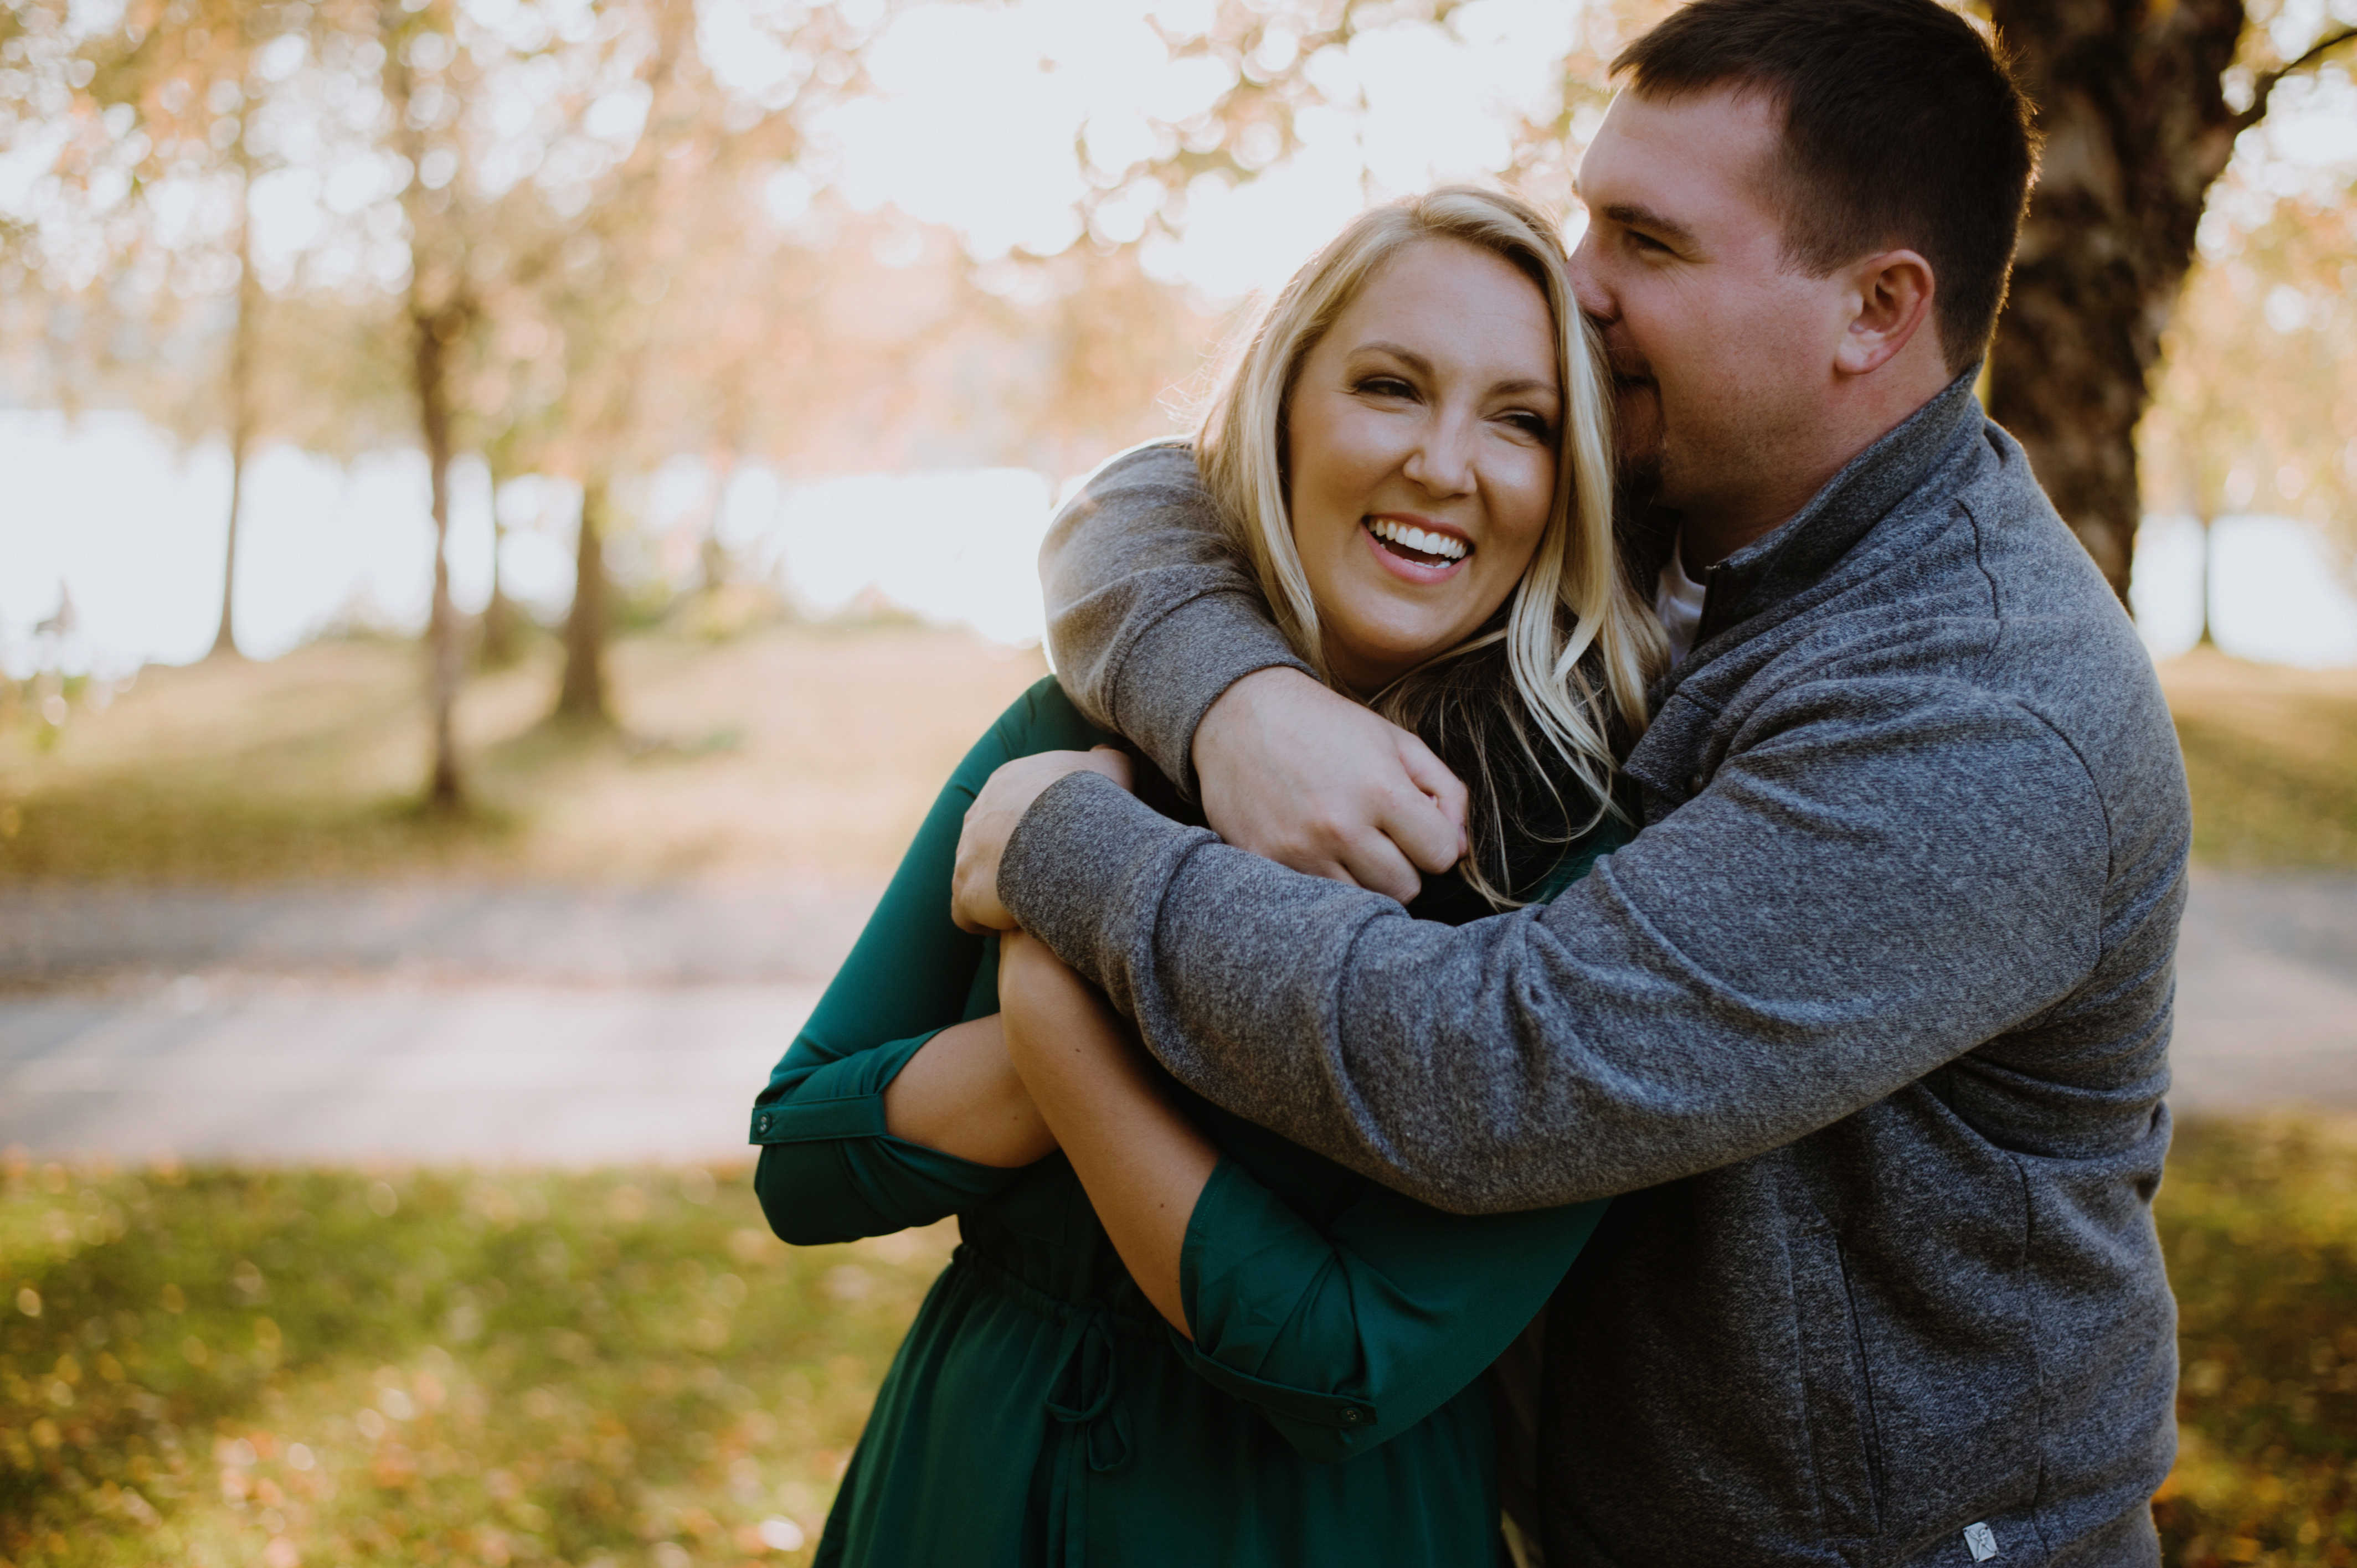 Seattle engagement | Seattle park engagement shoot | Carly Bish Photography | Perfectly Posh Events